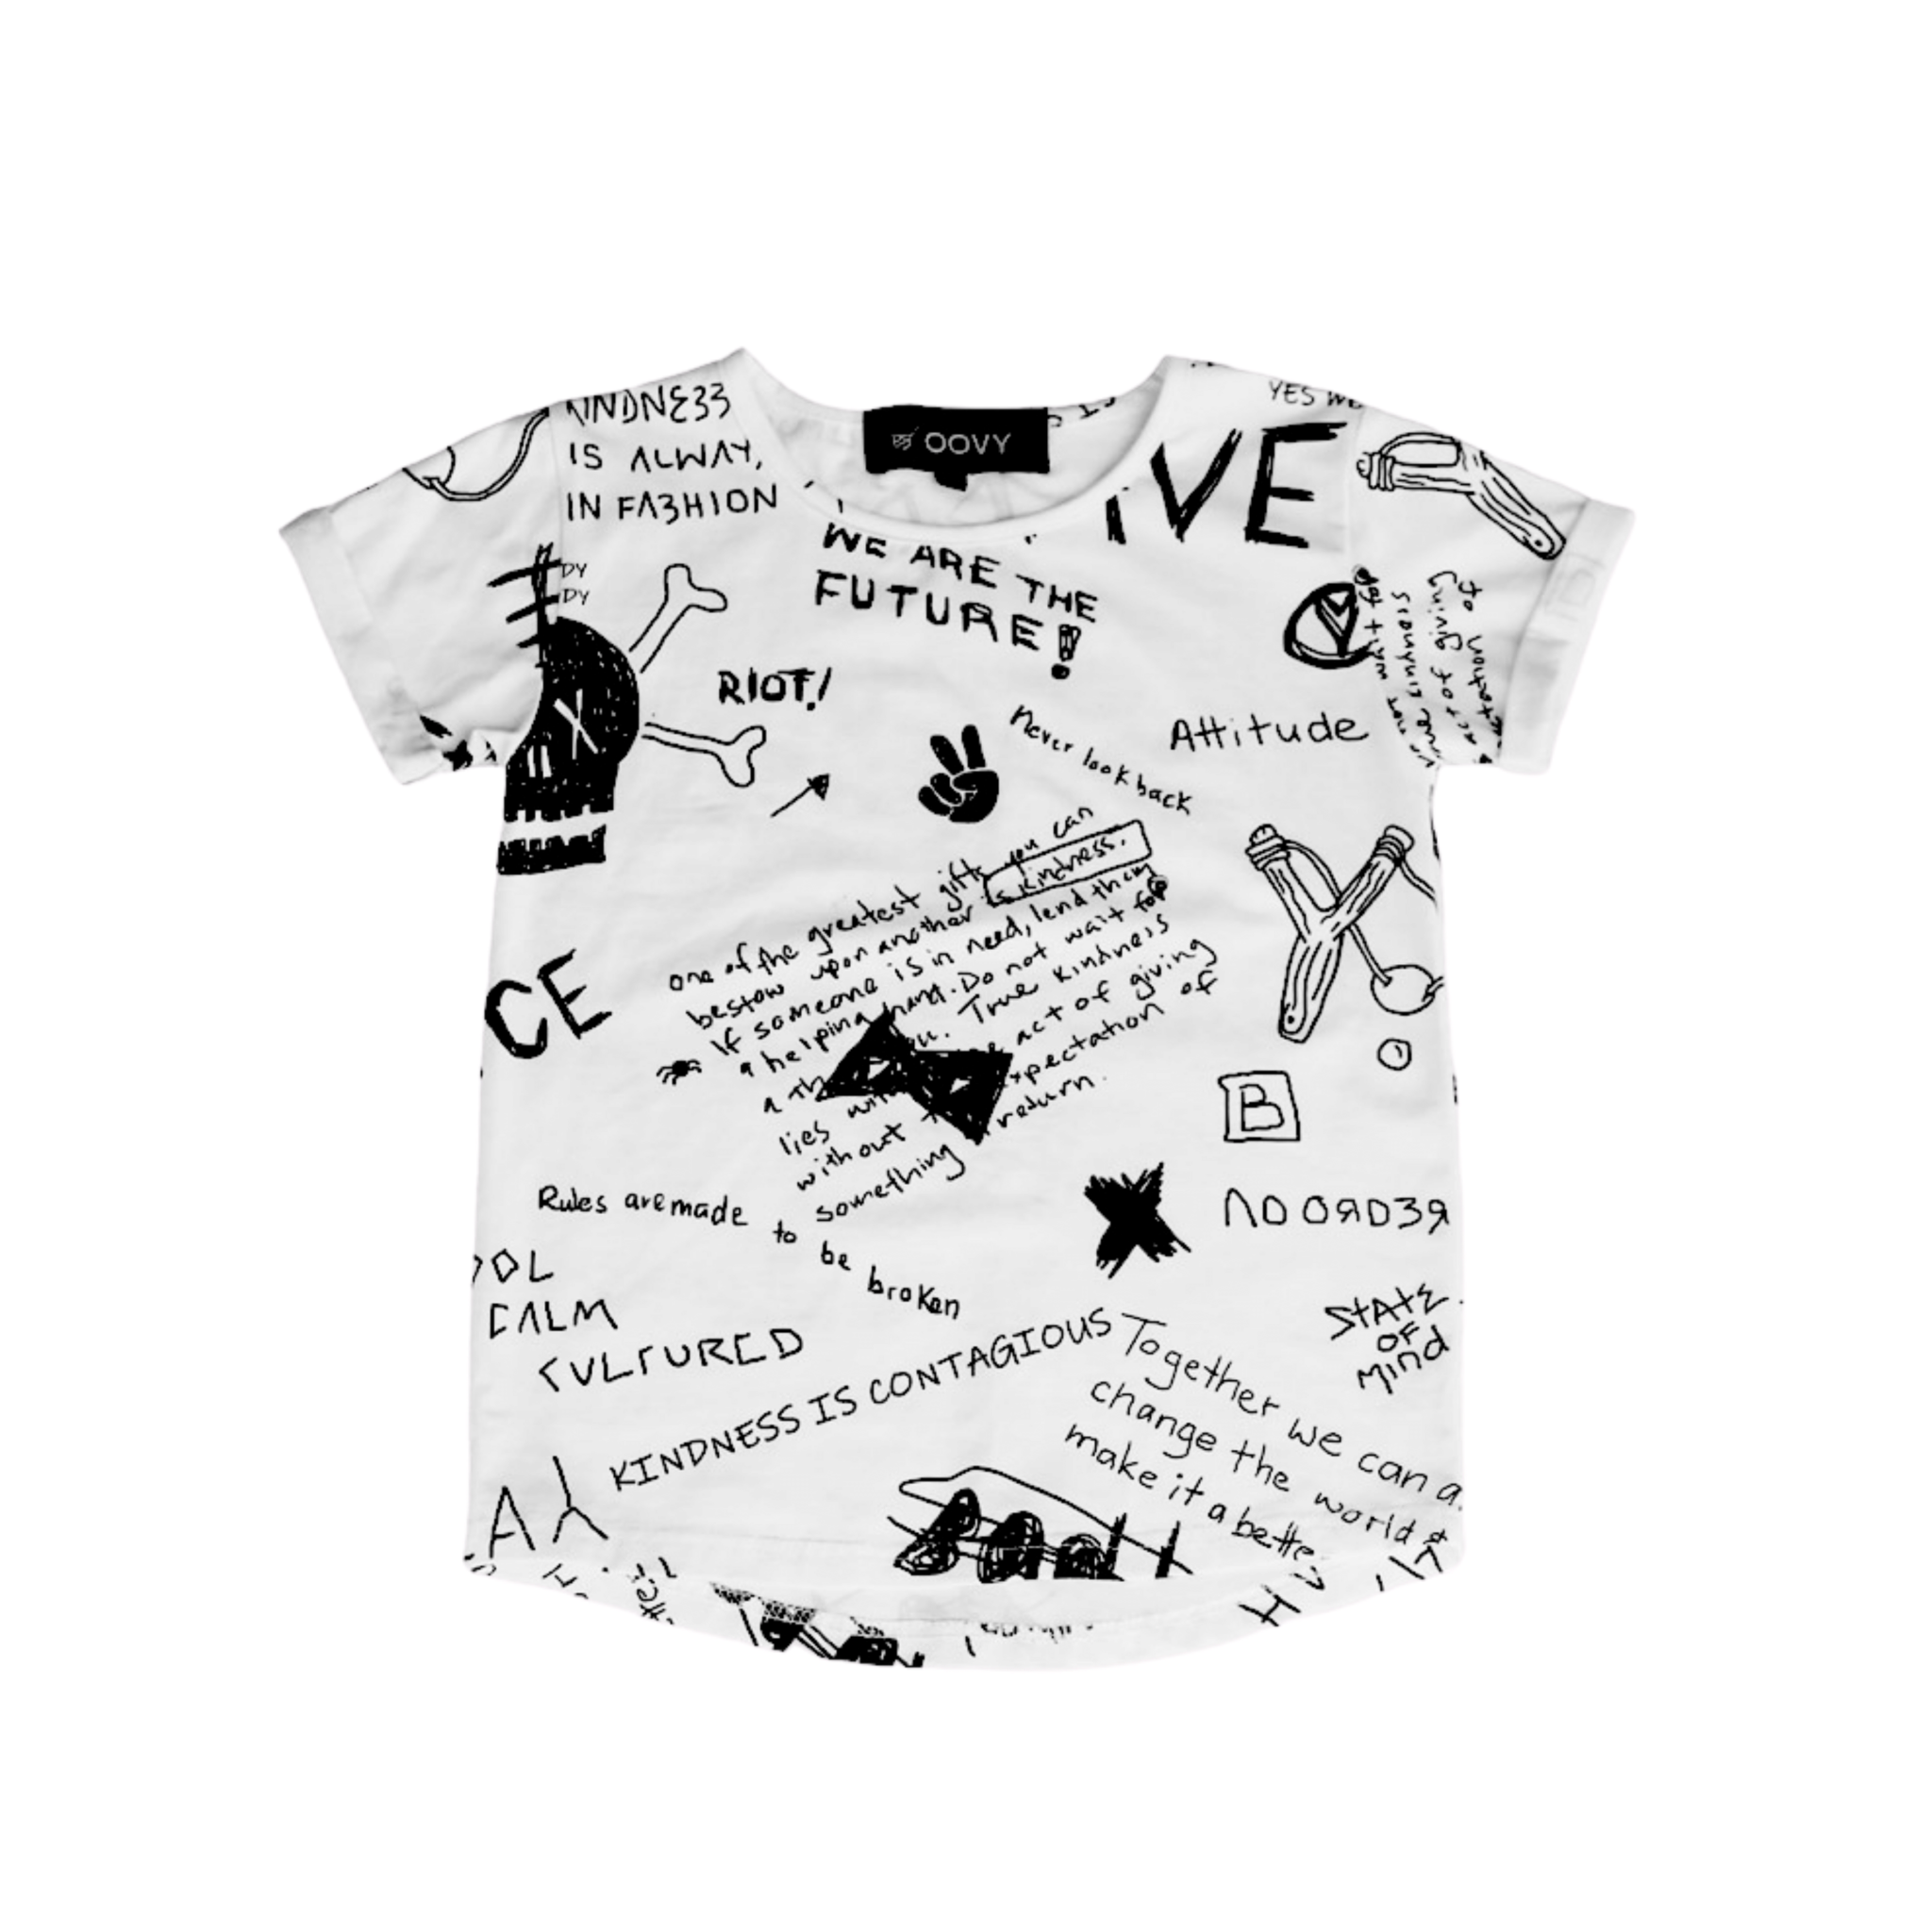 Oovy WHITE T-SHIRT WITH Tough PRINT | WHITE BOY SHIRT WITH PRINT | OOVY